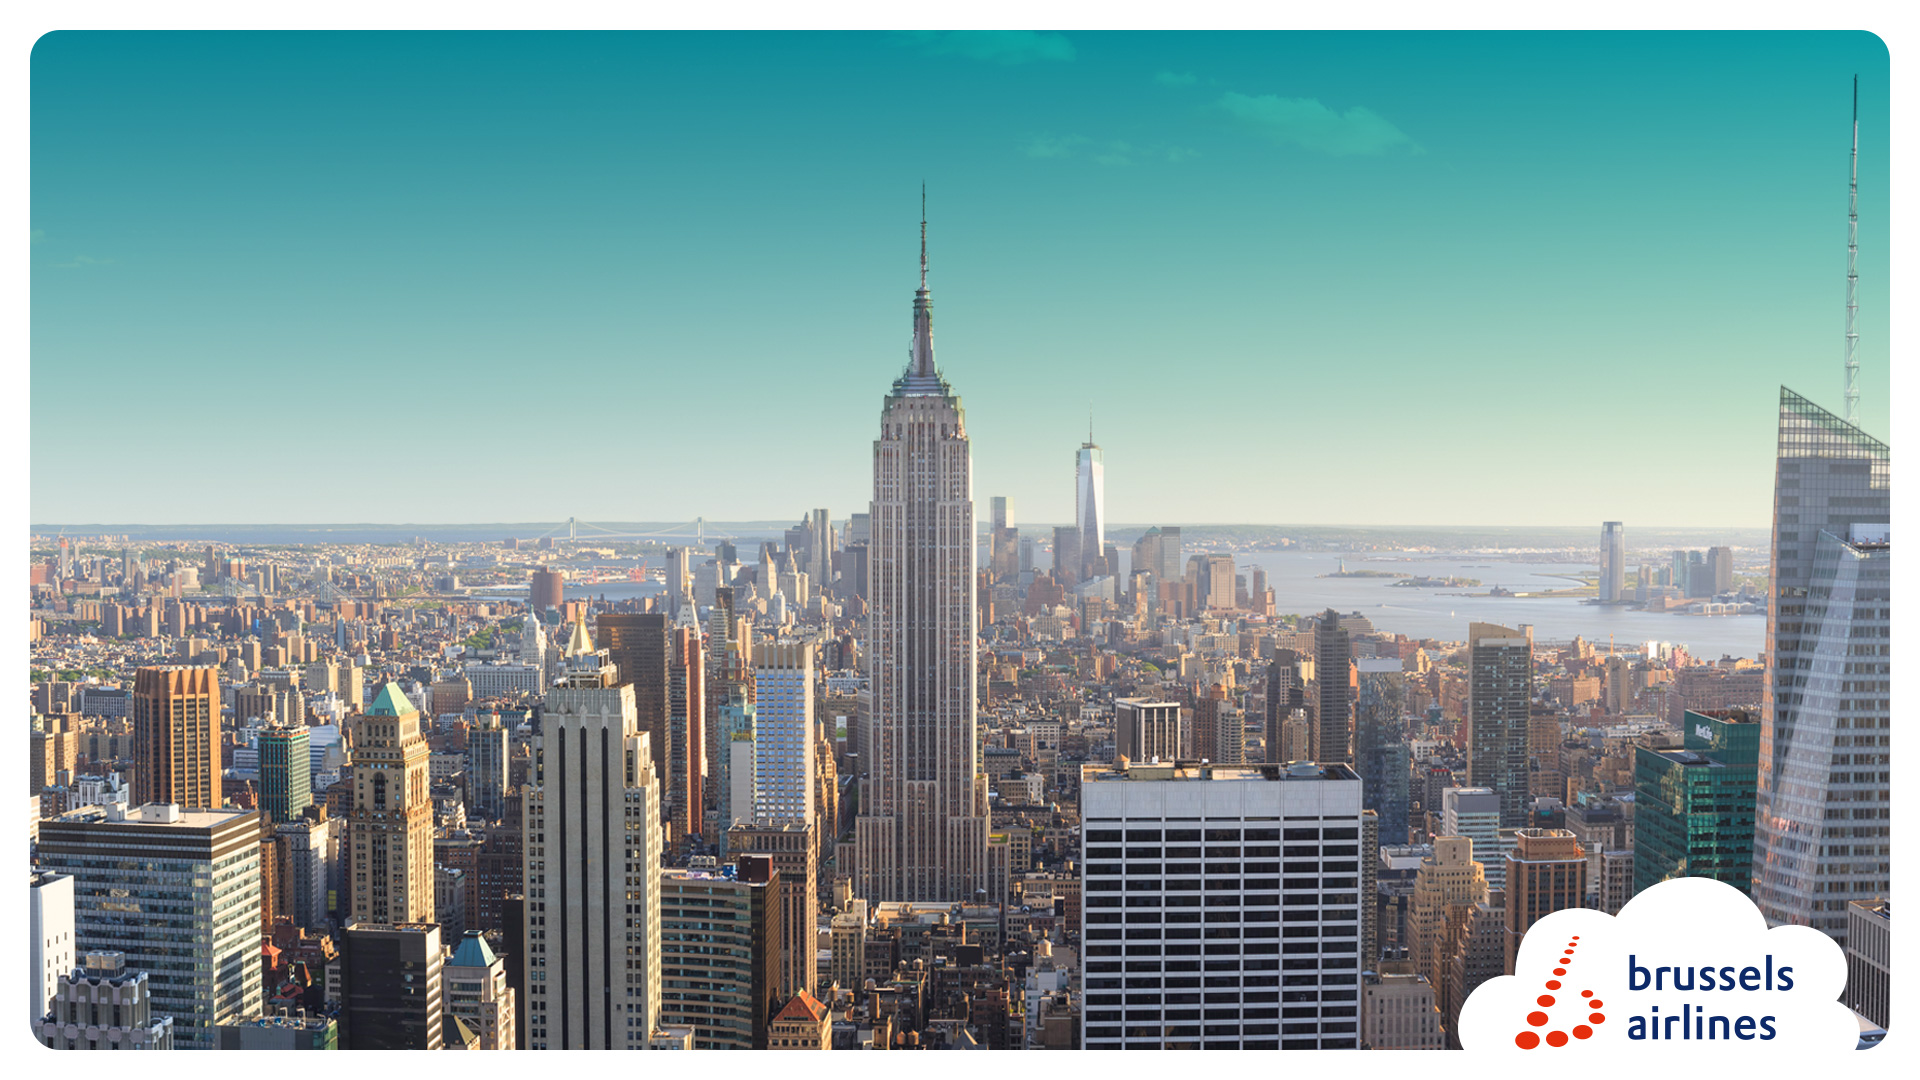 Daily from Entebbe via Brussels to New York while enjoying the 'Savoir Vivre' only Brussels Airlines can provide ...